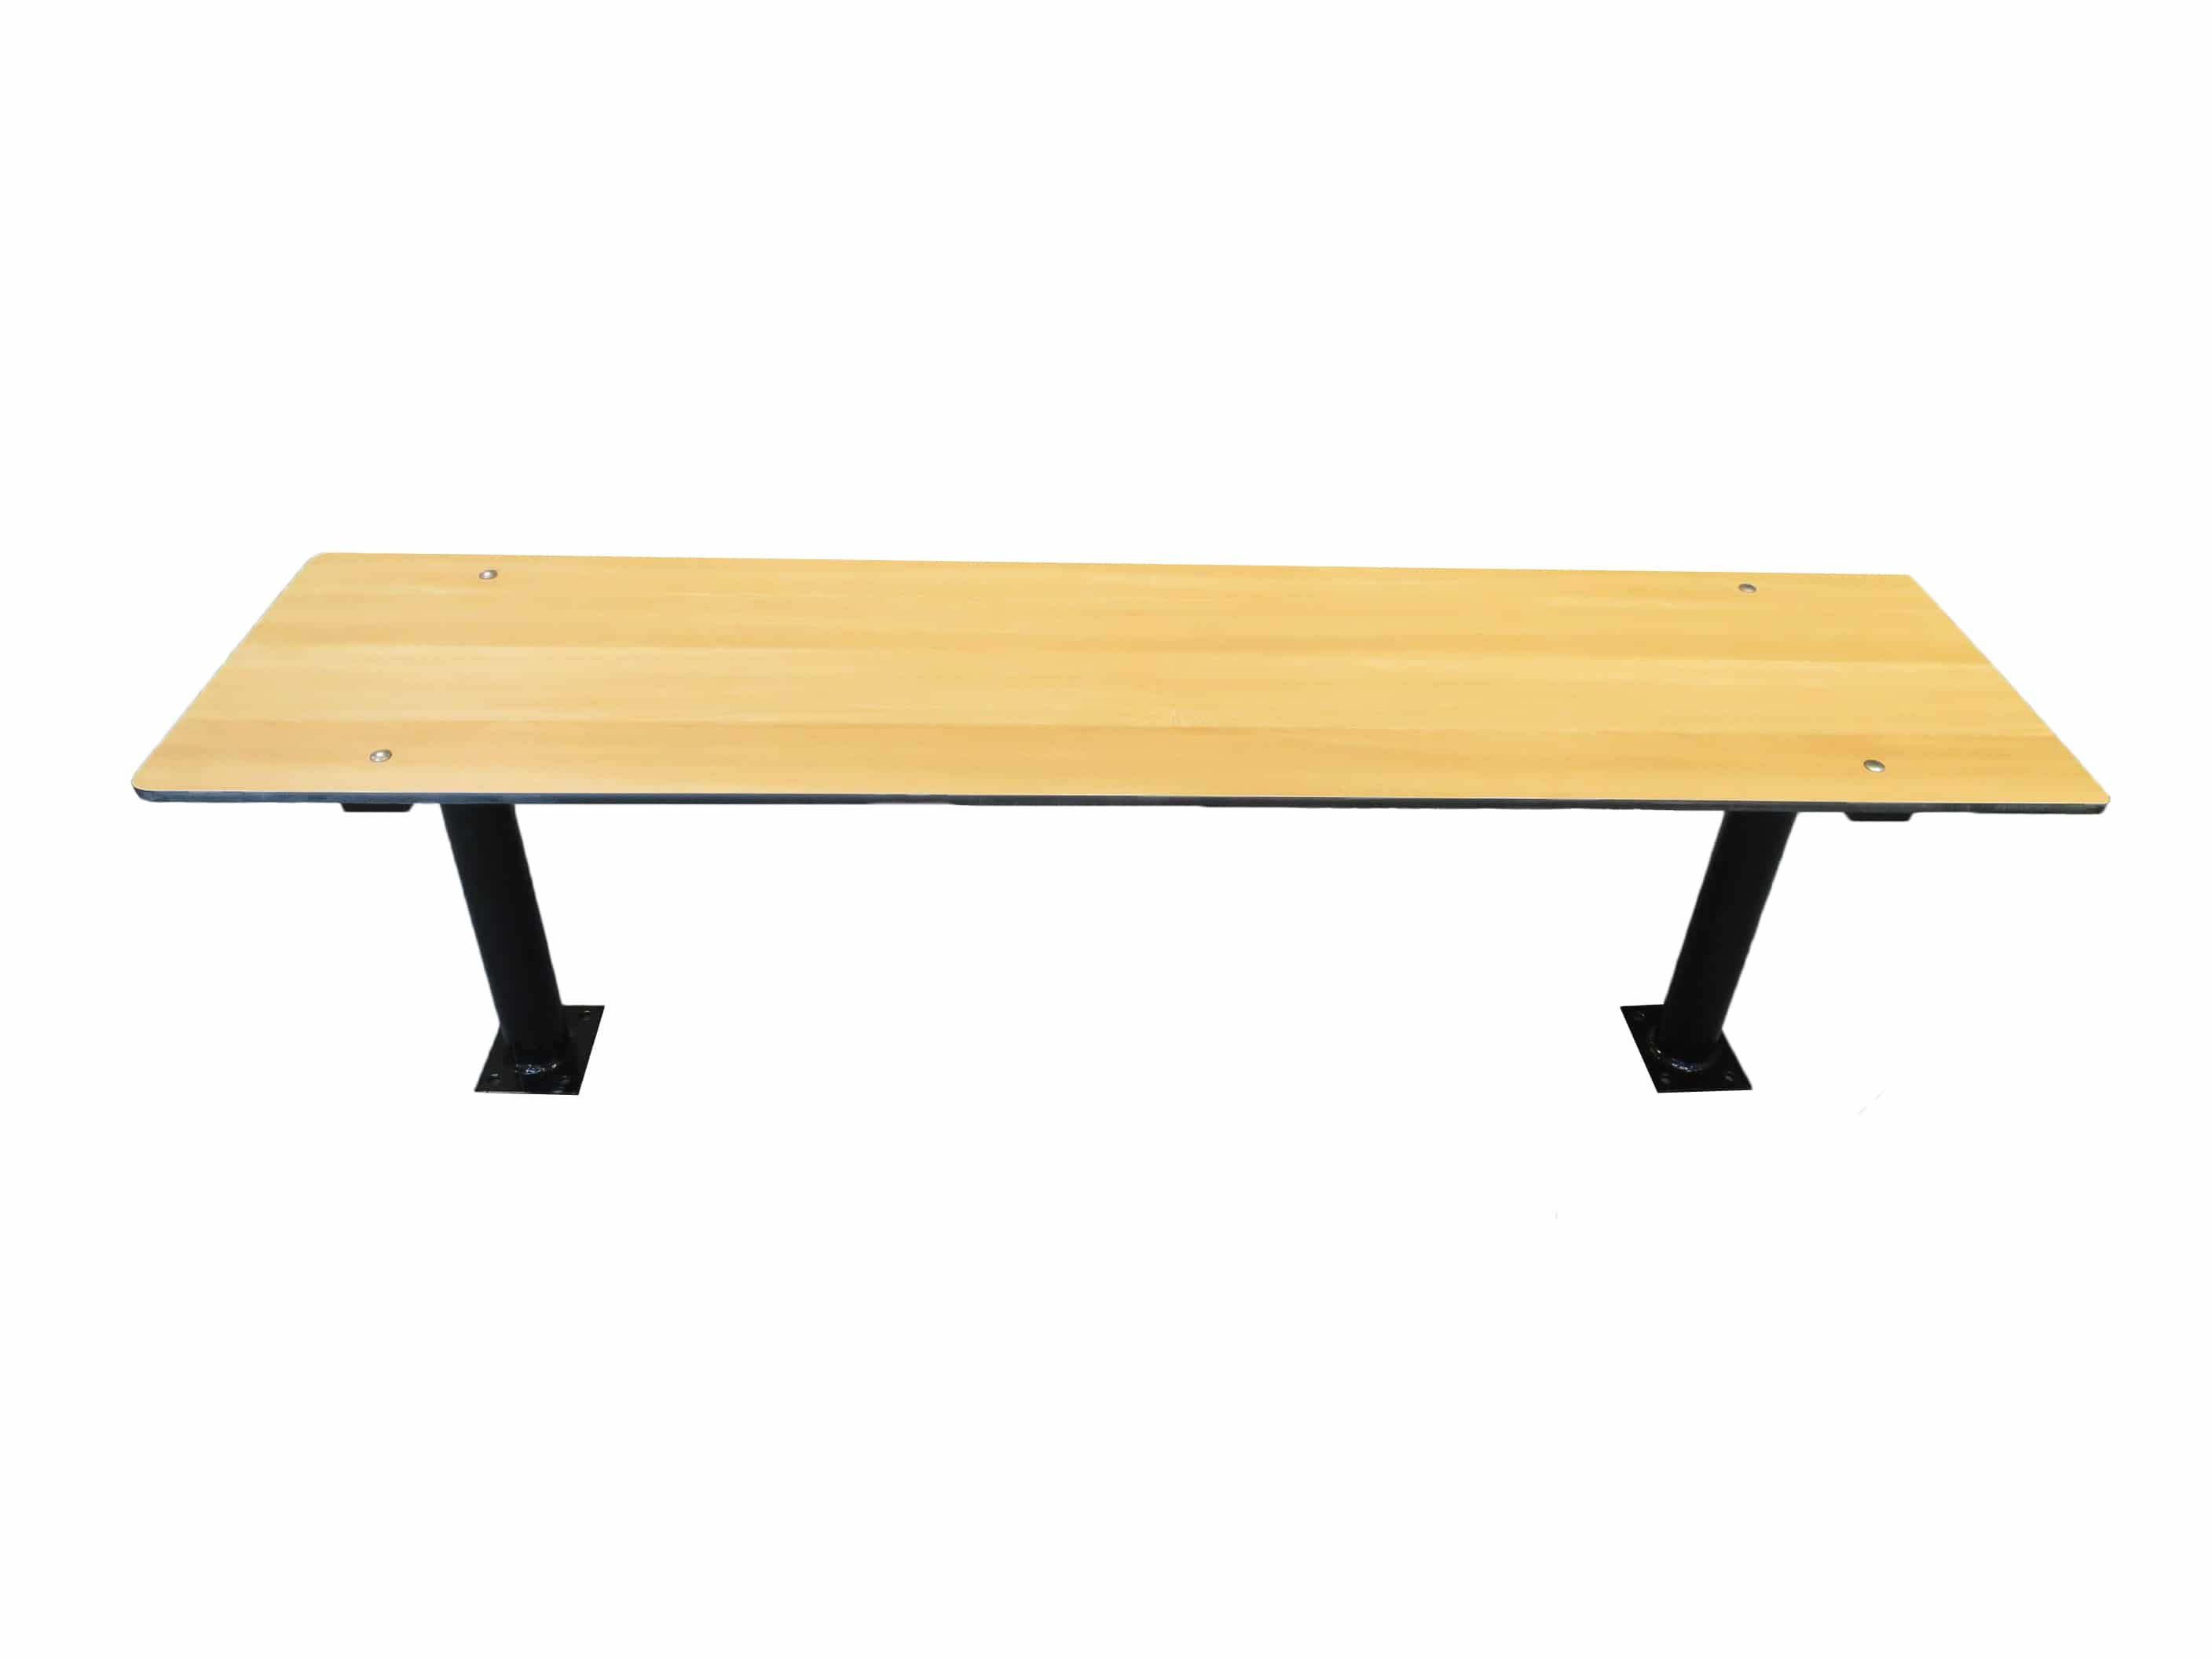 Pedestal changing room bench seating lockers for schools and leisure